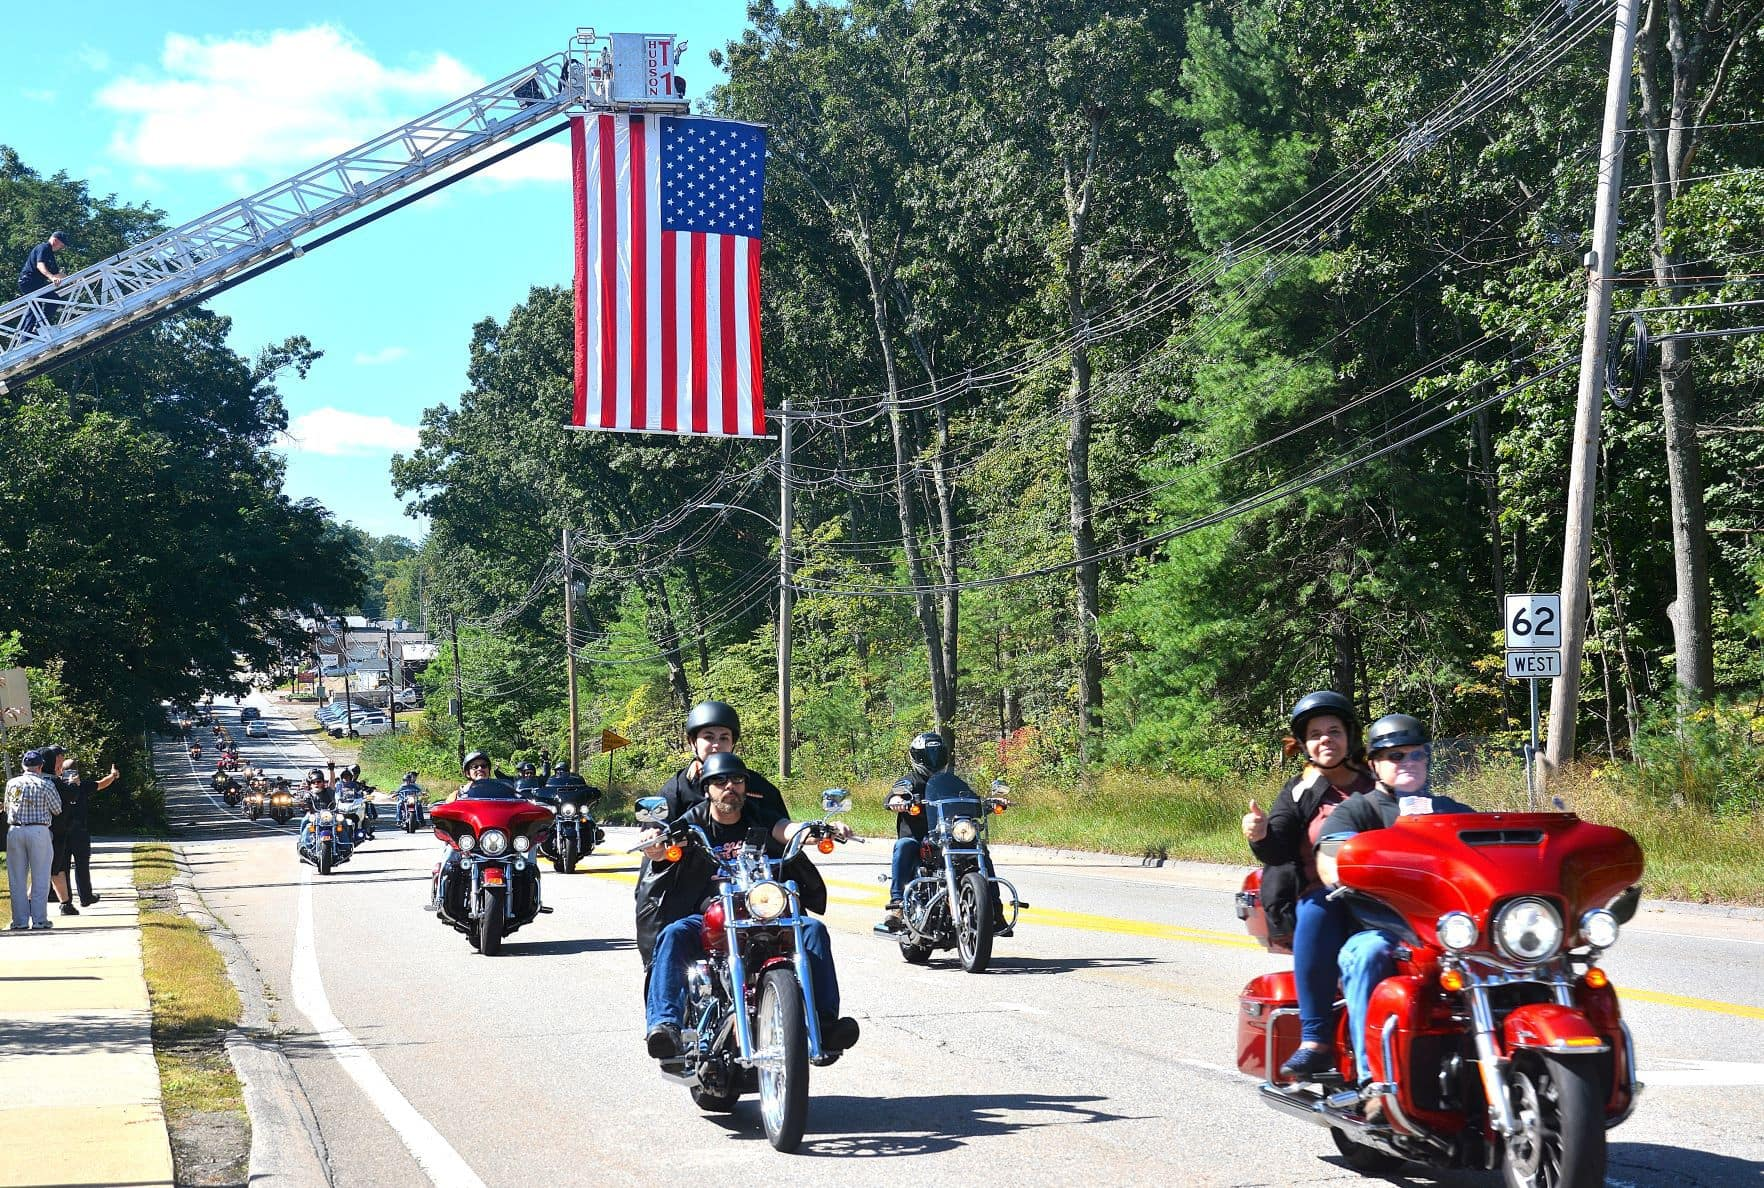 An American flag hoisted over Coolidge Street by the Hudson Fire Department welcomes the ride participants back to Hudson, including event co-founders Lenore and John Musorofiti (far right).